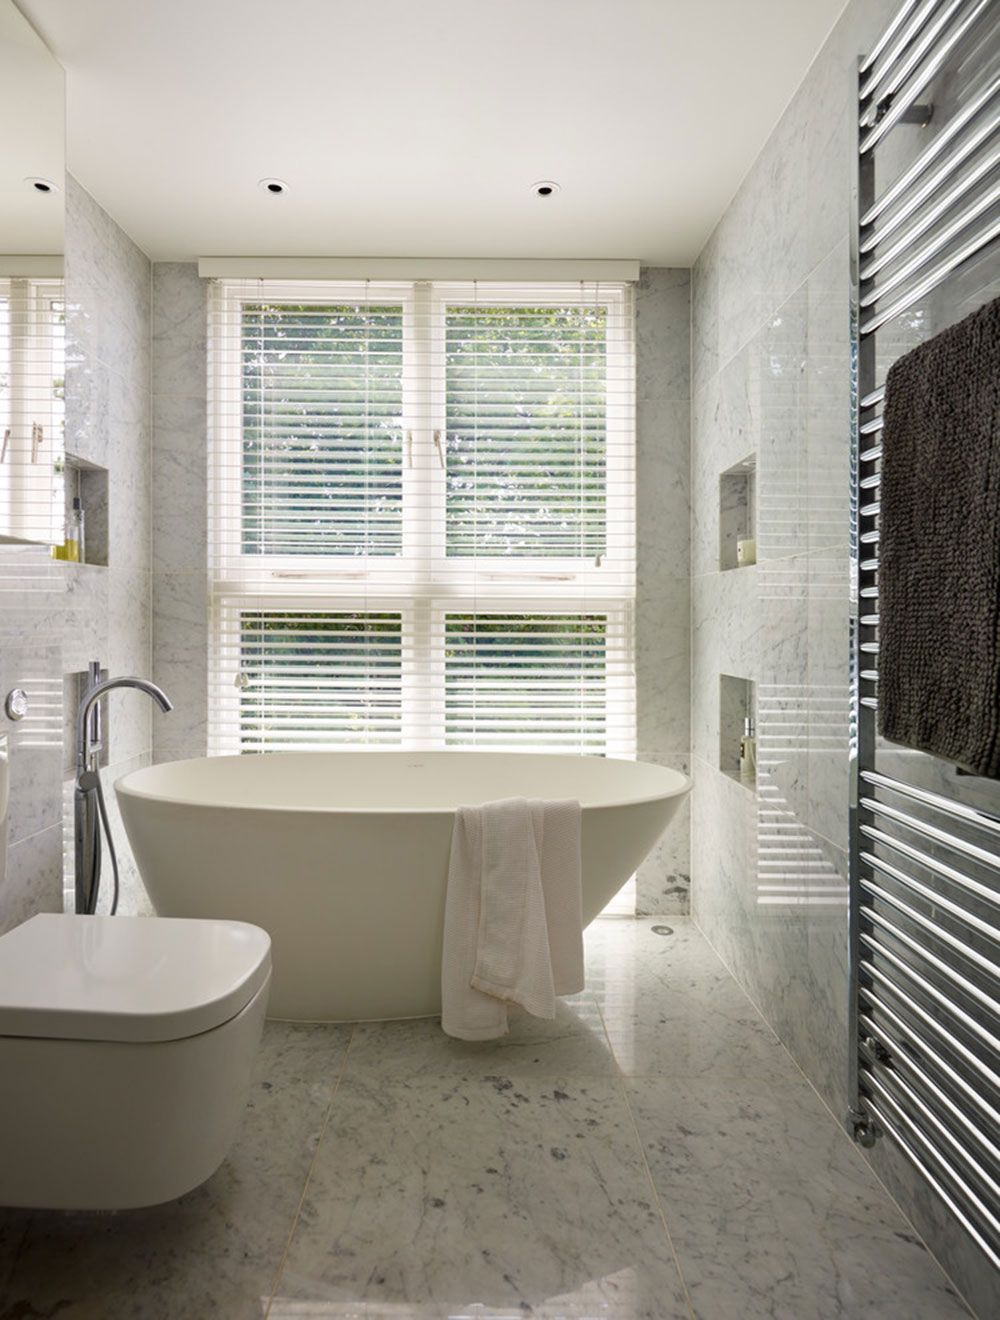 Beautify Houses With Marble Bathroom Design Ideas | Bathrooms ...